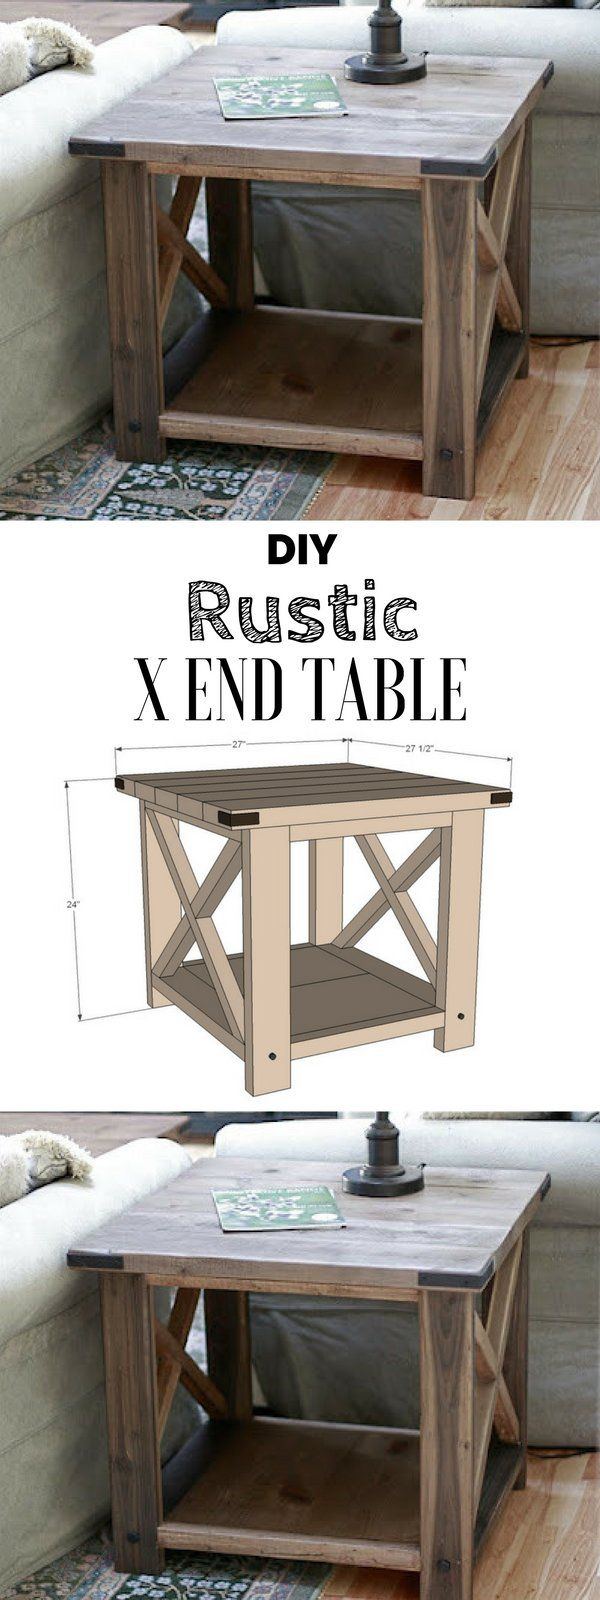 15 Easy DIY Tables That You Can Actually Build Yourself Diy End TablesRustic TablesDiy TableLiving Room